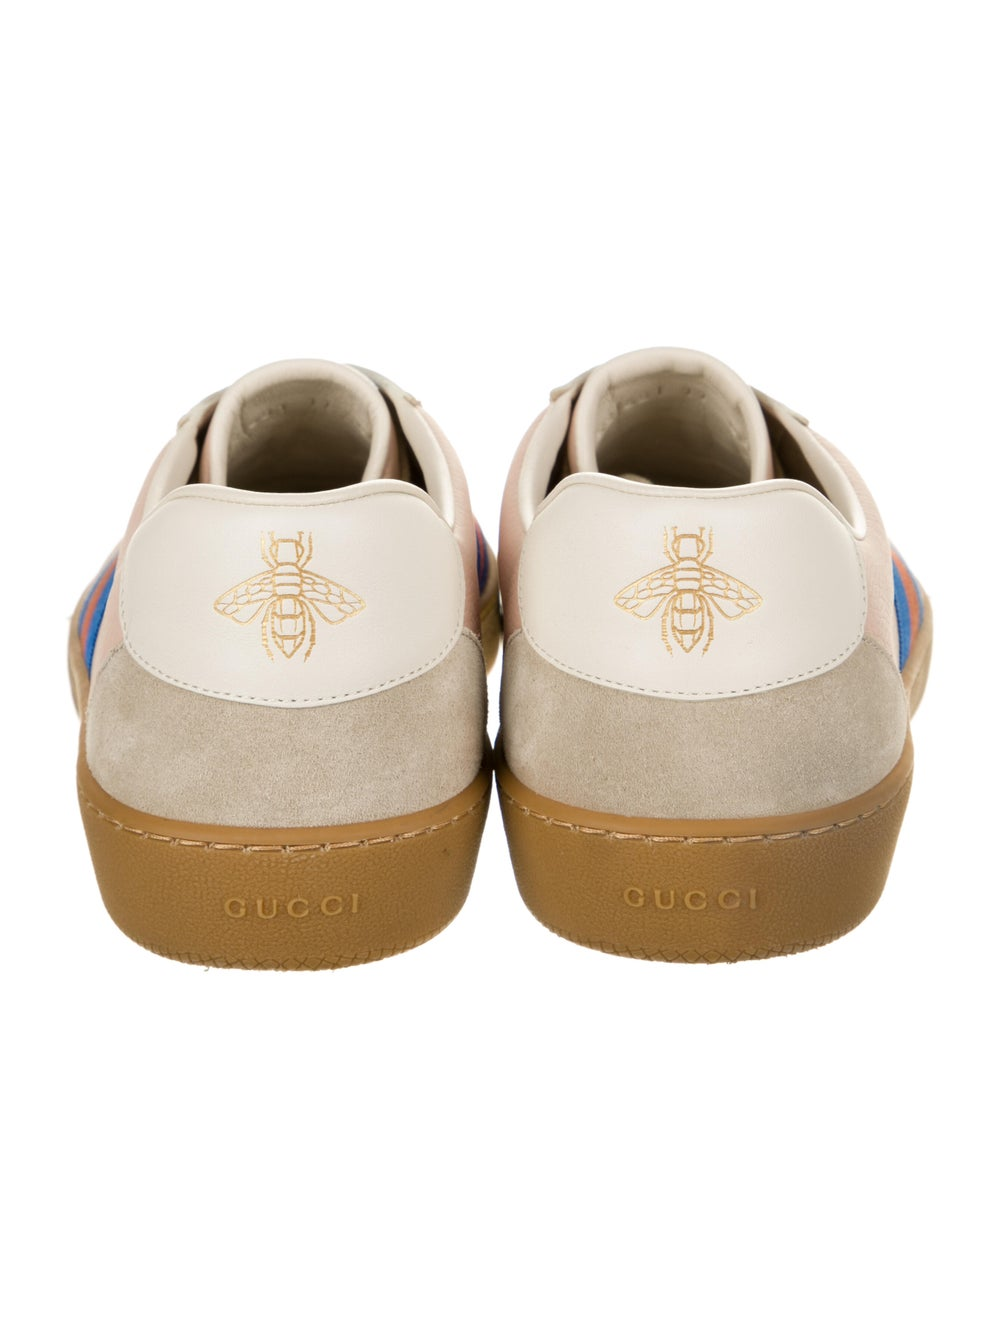 Gucci G74 Sneakers - image 4